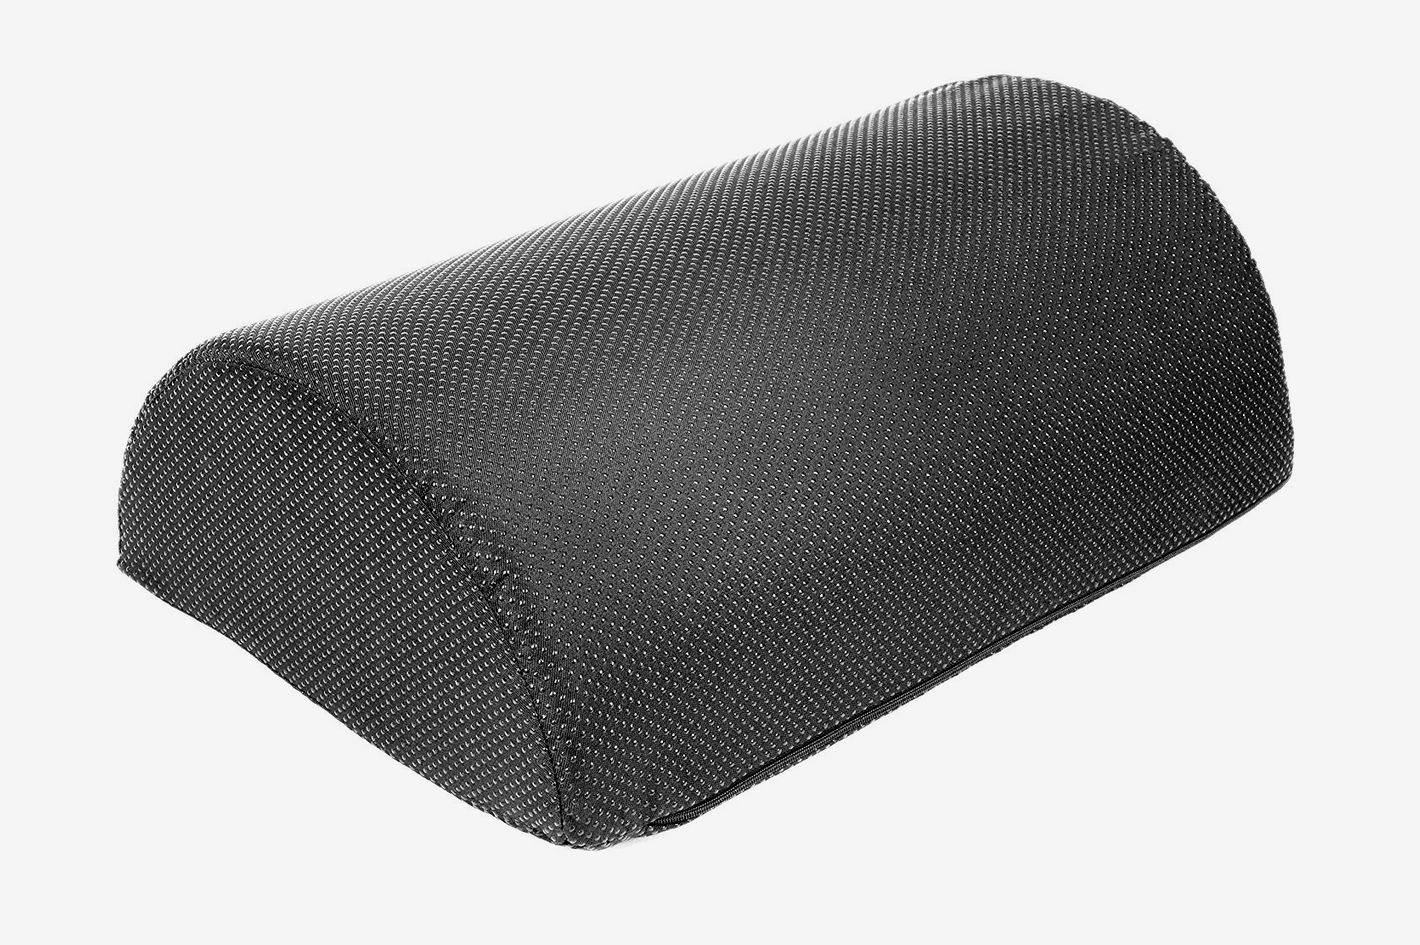 Essentials Home & Office Foot Rest Cushion